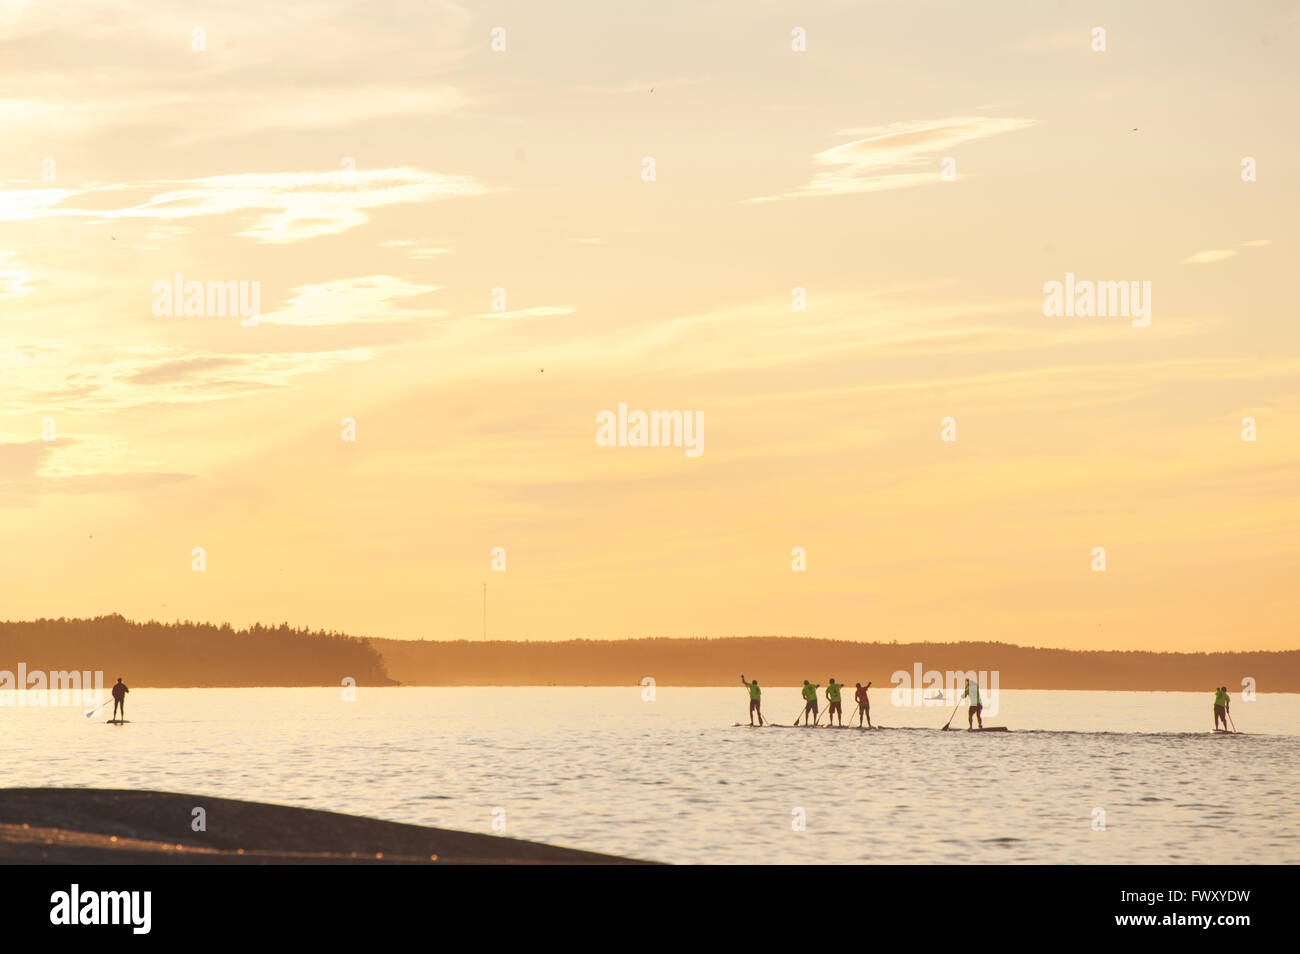 amp; Fotos People Immagini Alamy Of Finland Stock gnqqtIO